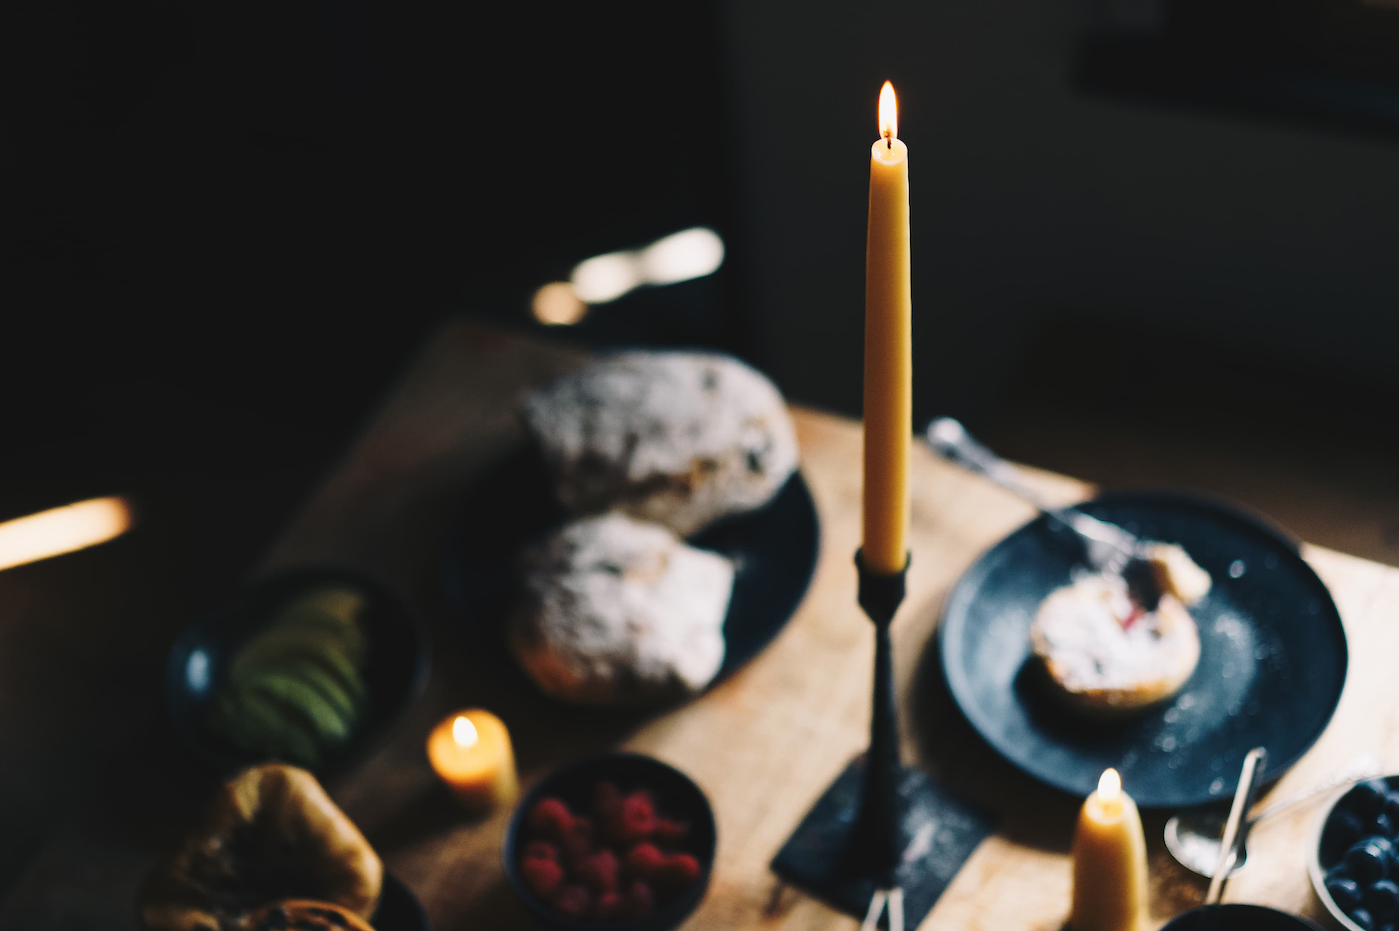 Skar candles are made from organic beeswax